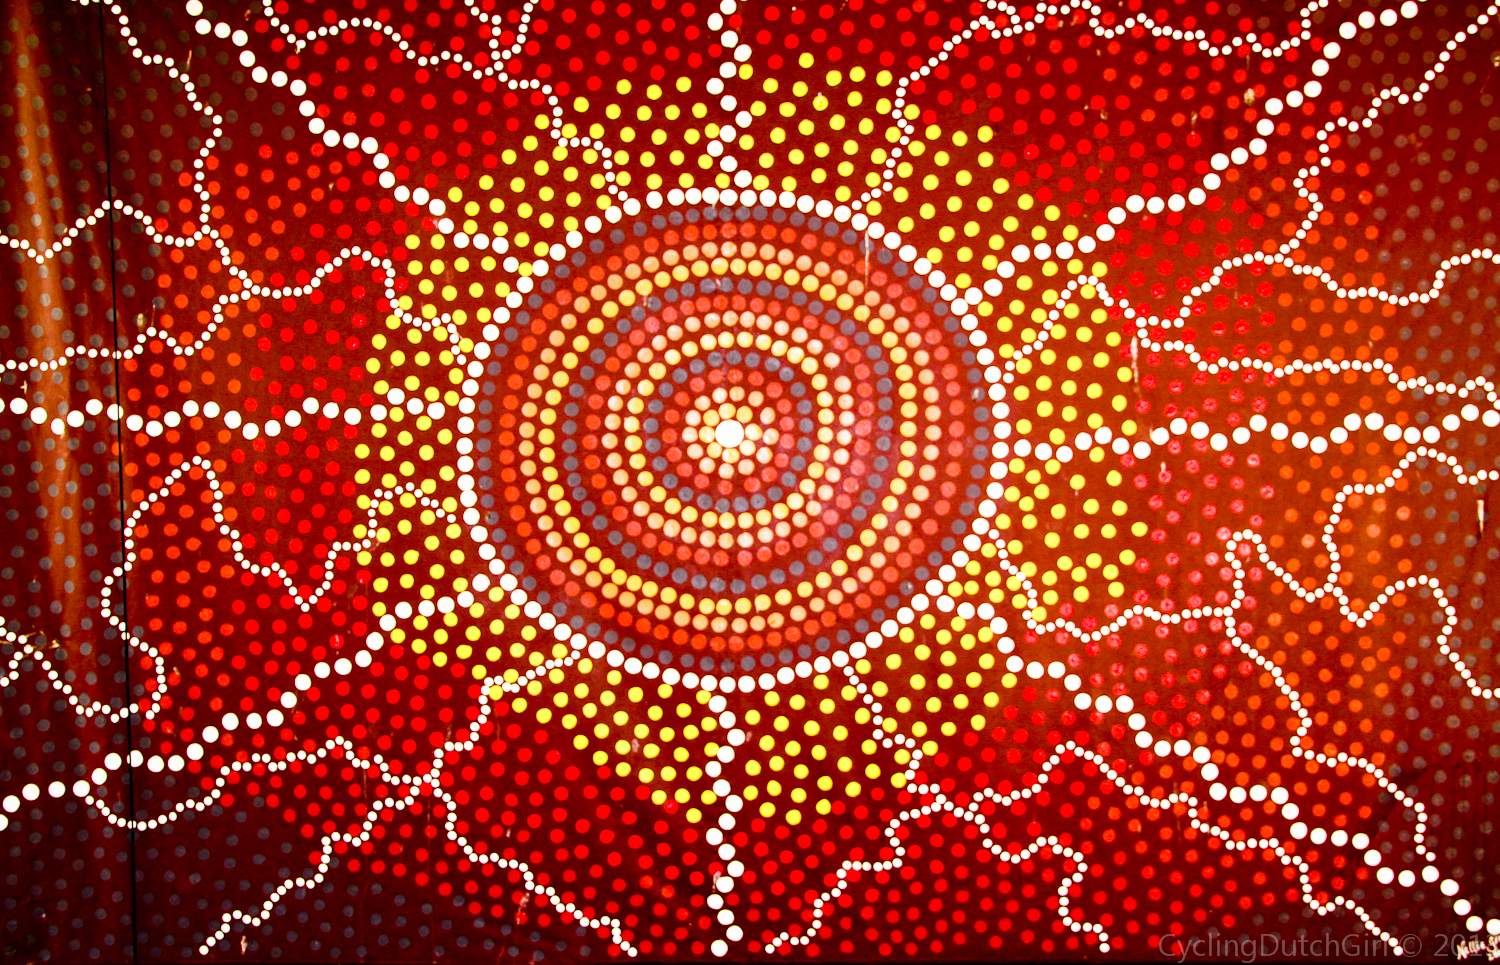 Download this Aboriginal Art picture